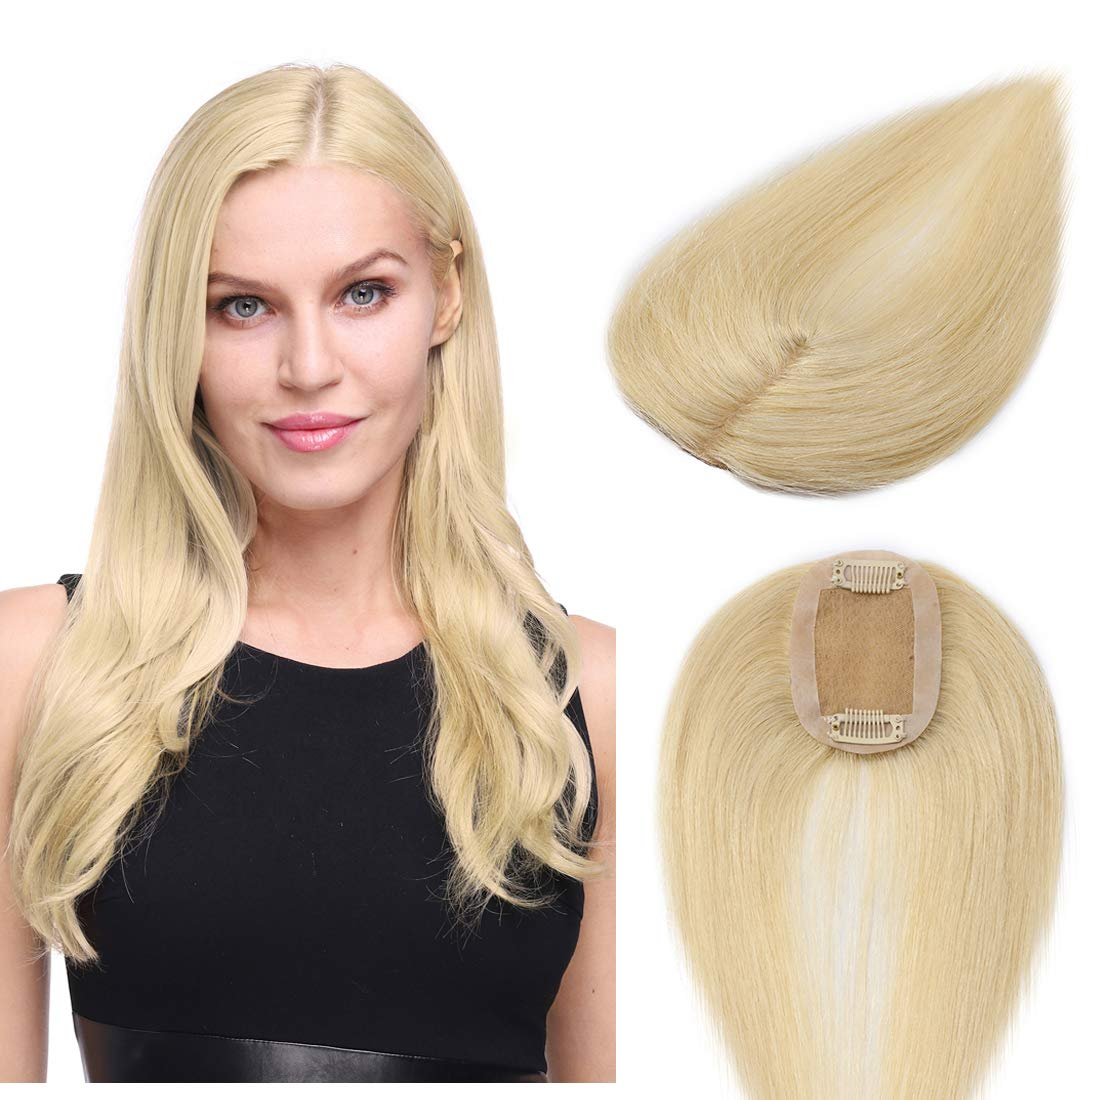 S-noilite Clip in Silk Base Real Human Hair Topper for Women Top Hairpiece Clips in Crown Toupee Replacement Extentions for Slight Hair Loss Thinning Hair Cover Gray Hair 10 Inch (#613 Bleach Blonde)